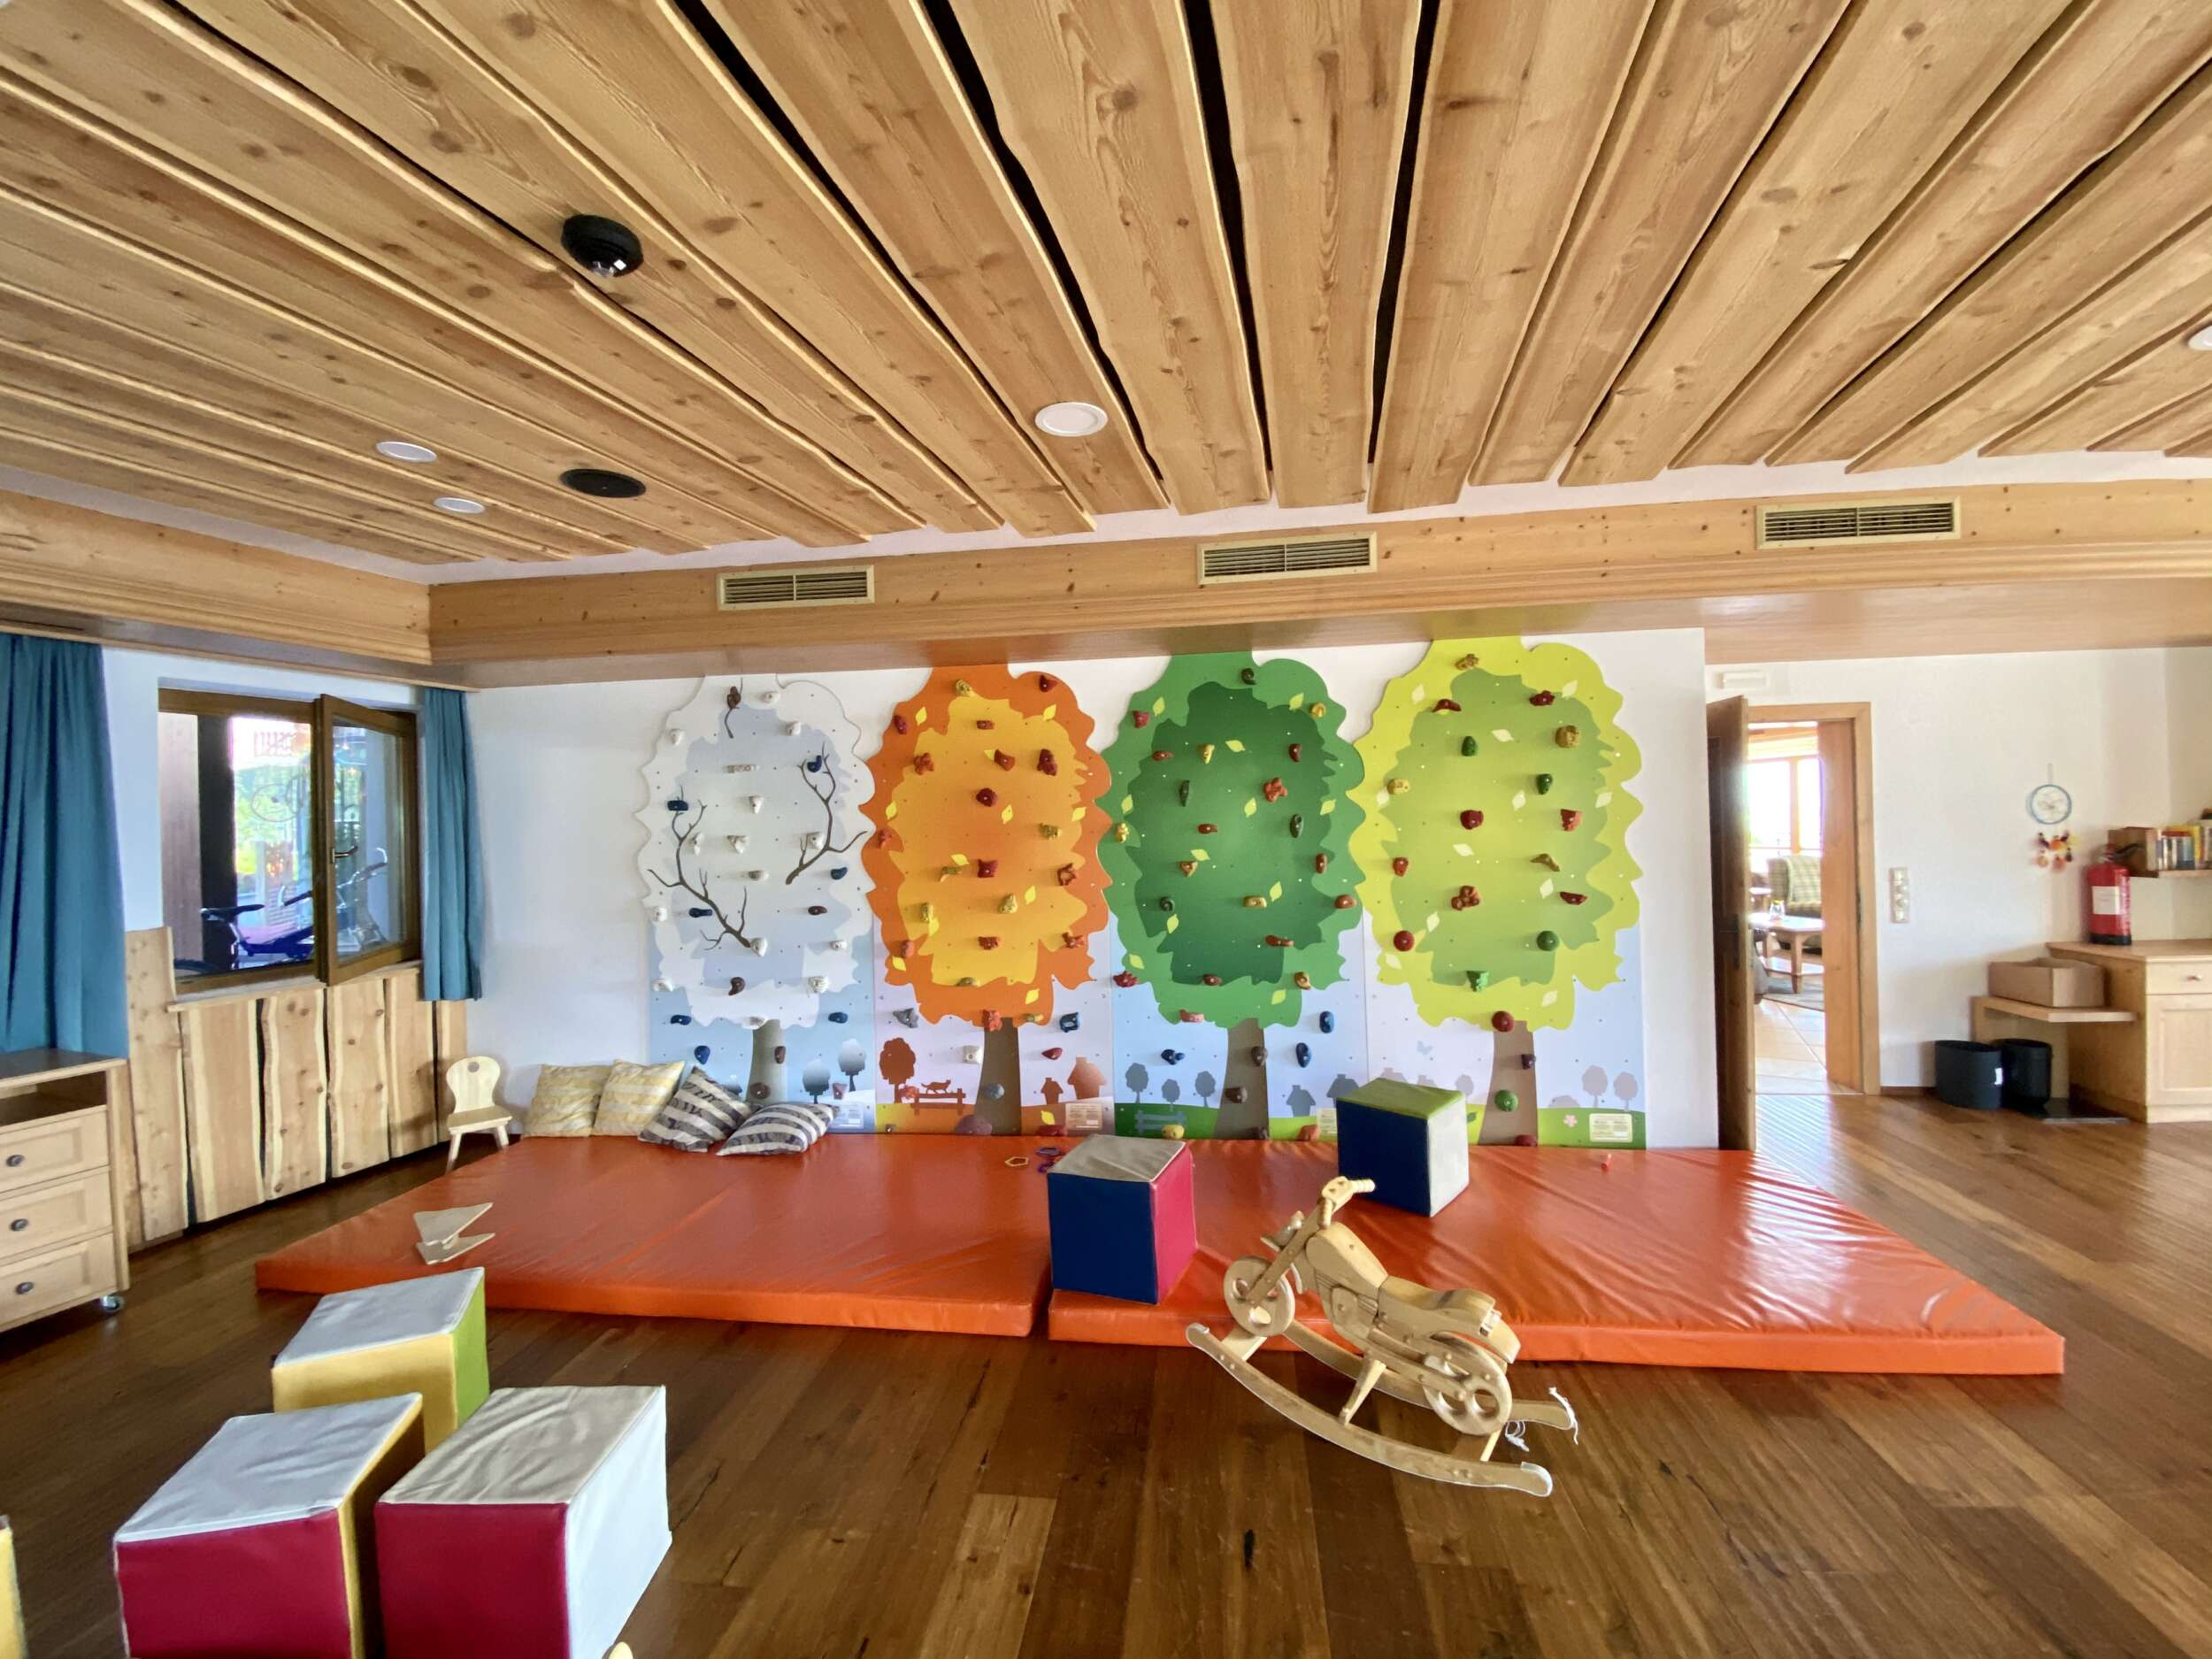 Indoor playroom at the South Tyrolean Panorama Hotel